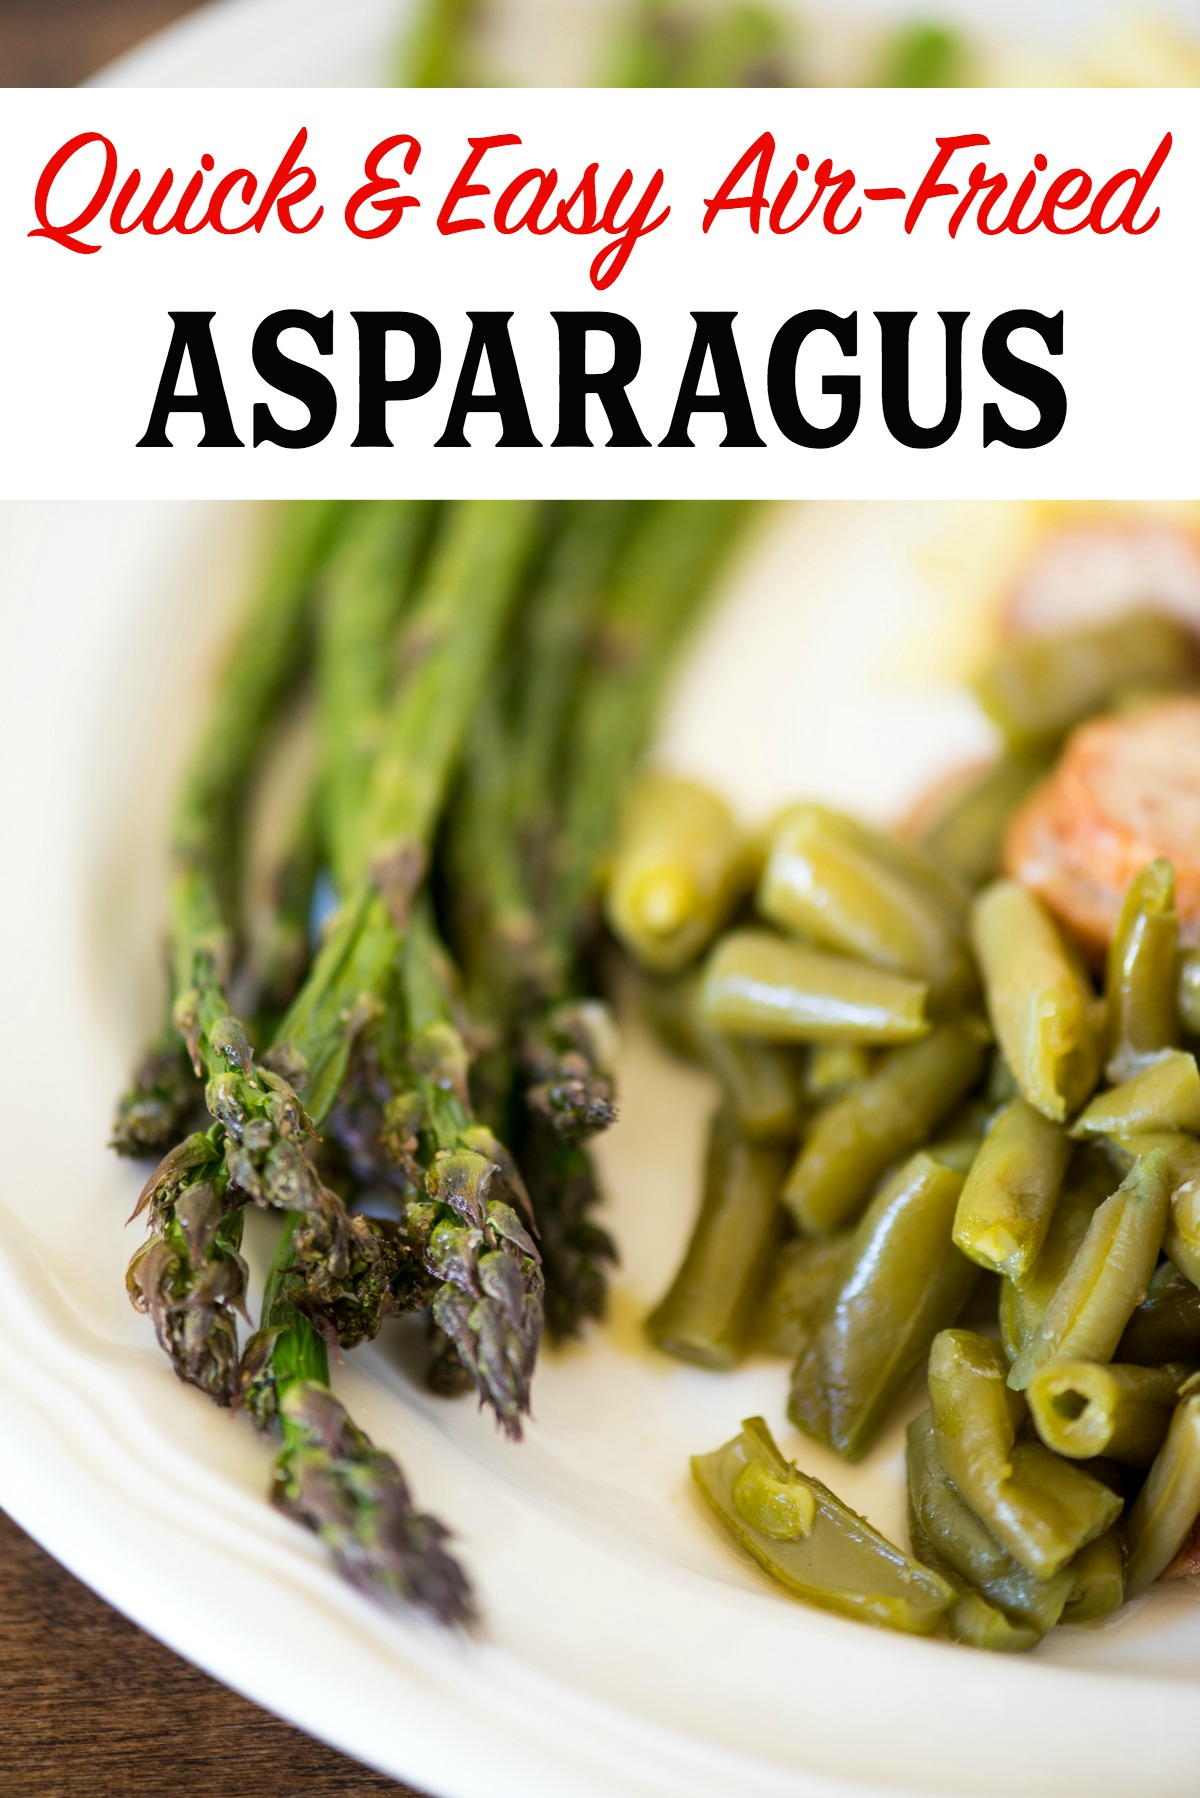 Easy to make Air-Fried Asparagus